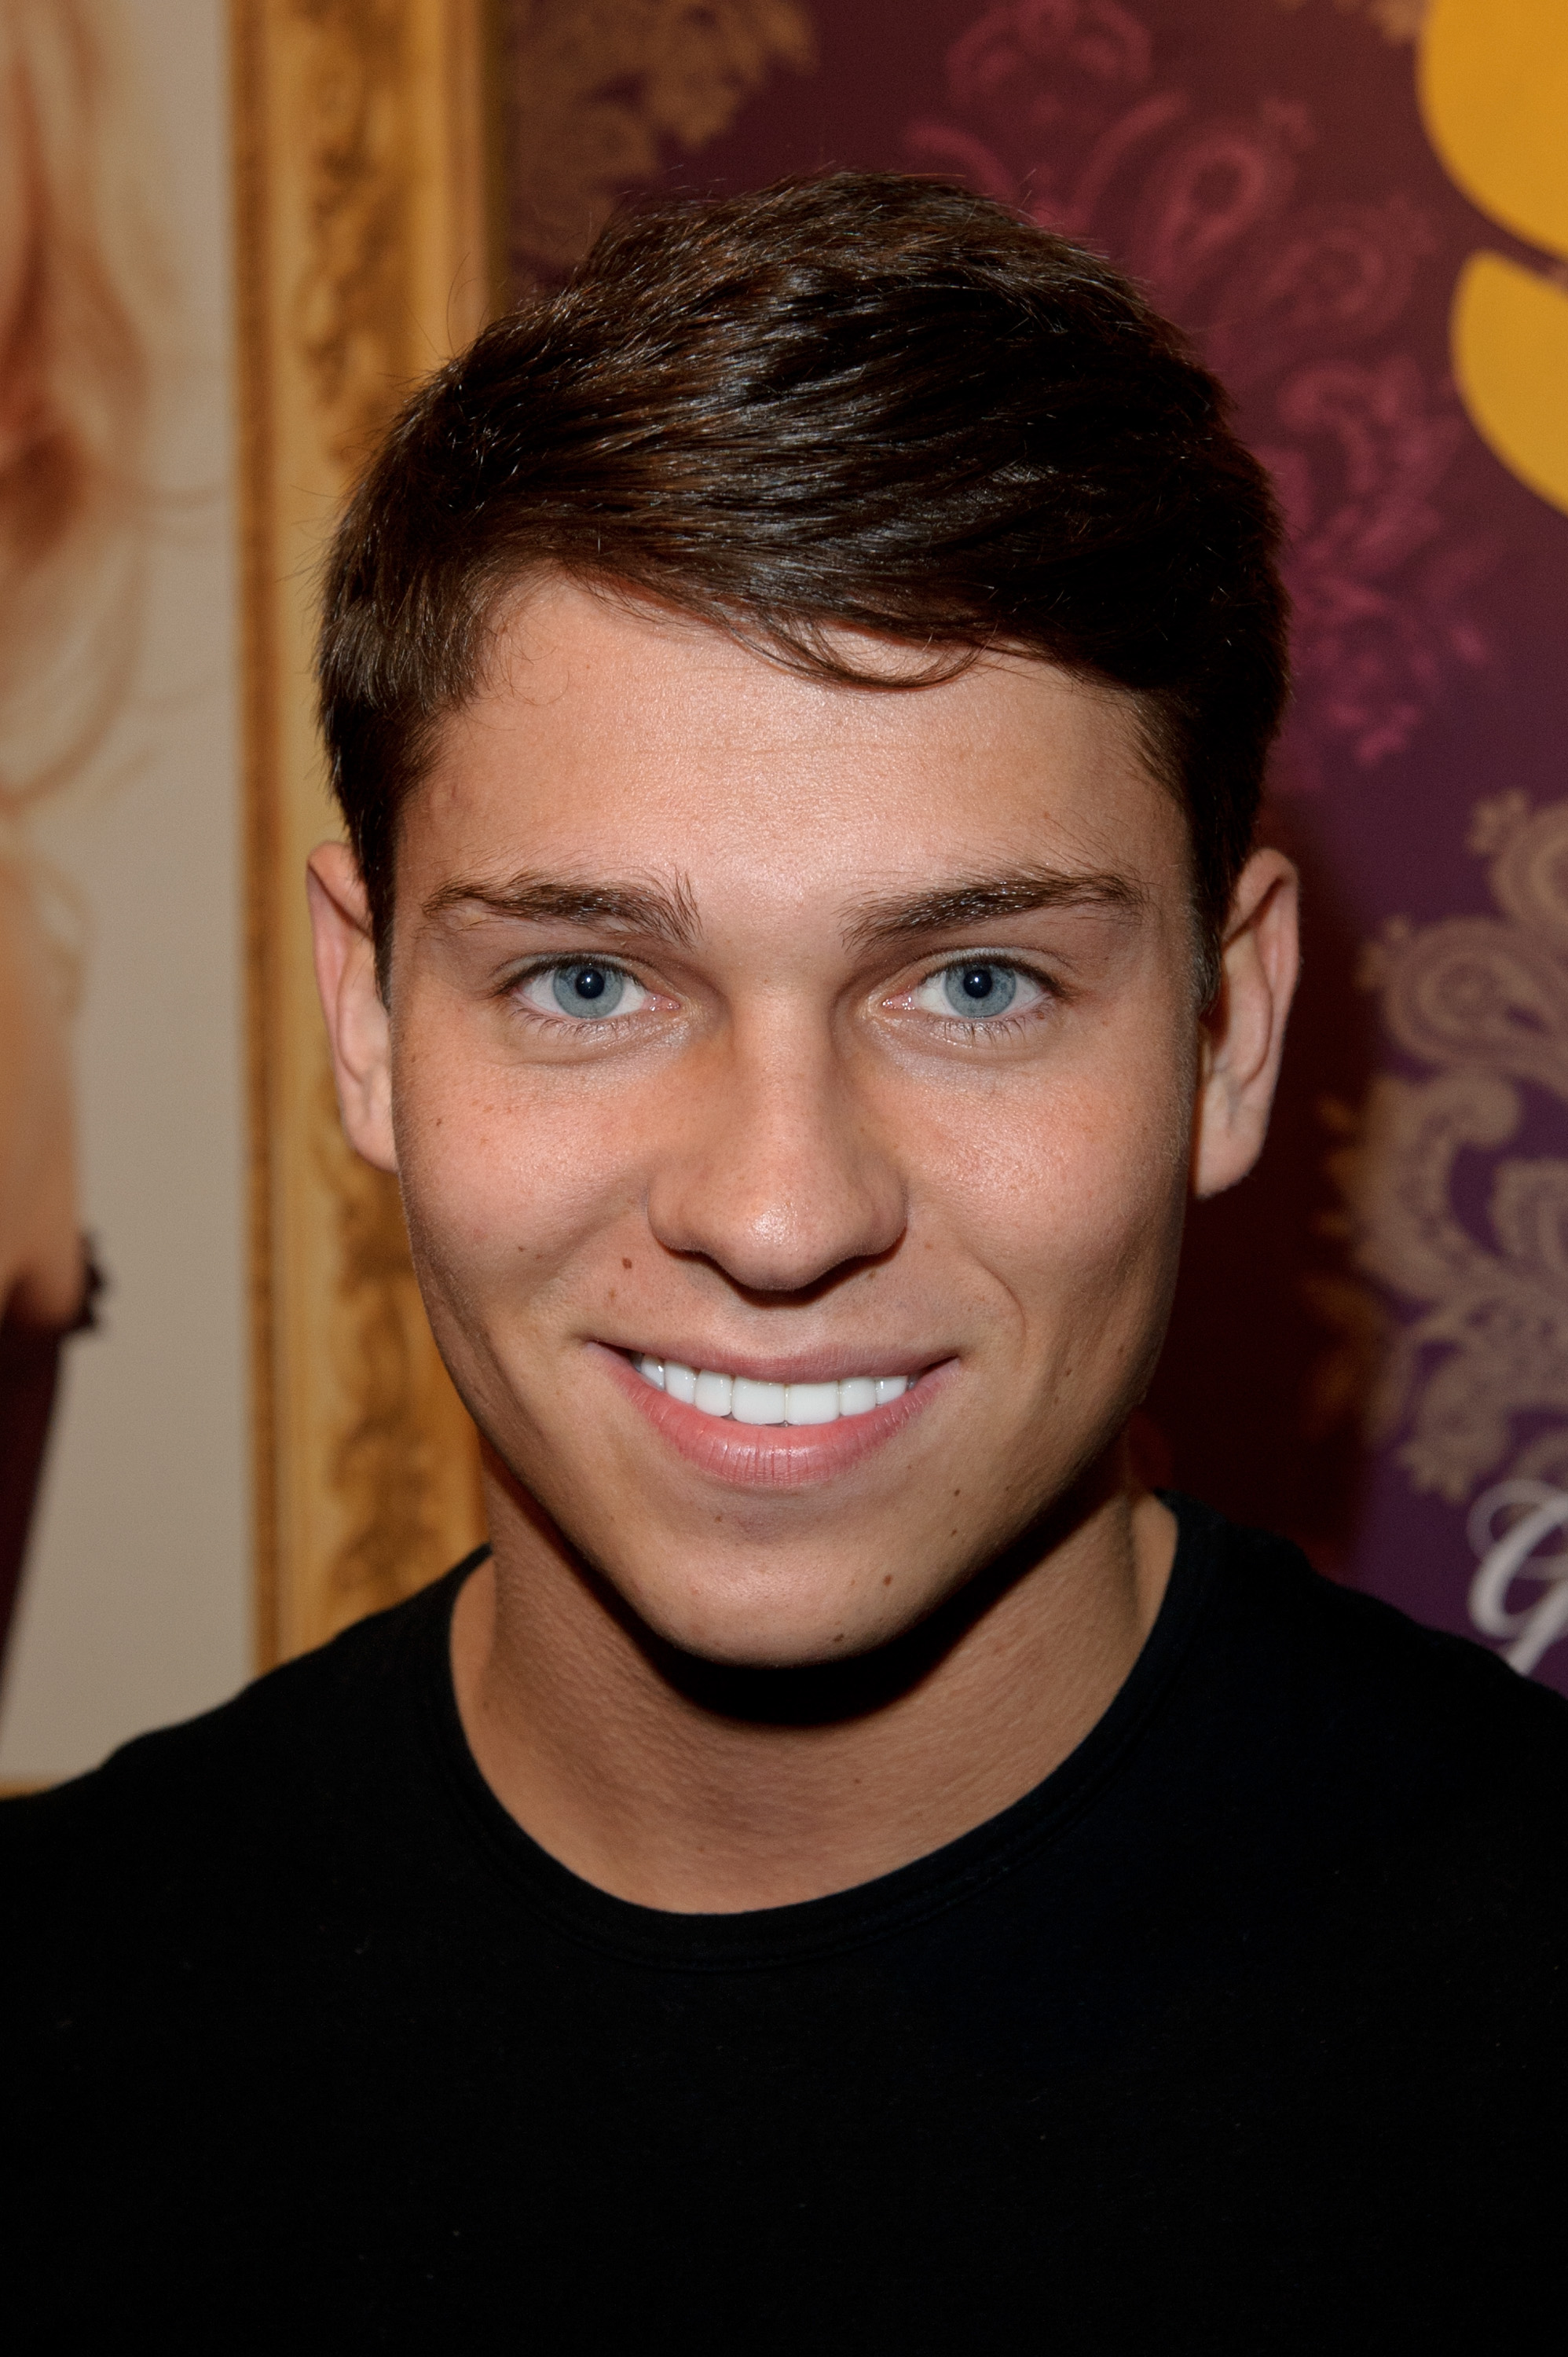 Joey Essex at The Professional Beauty Show - 2012